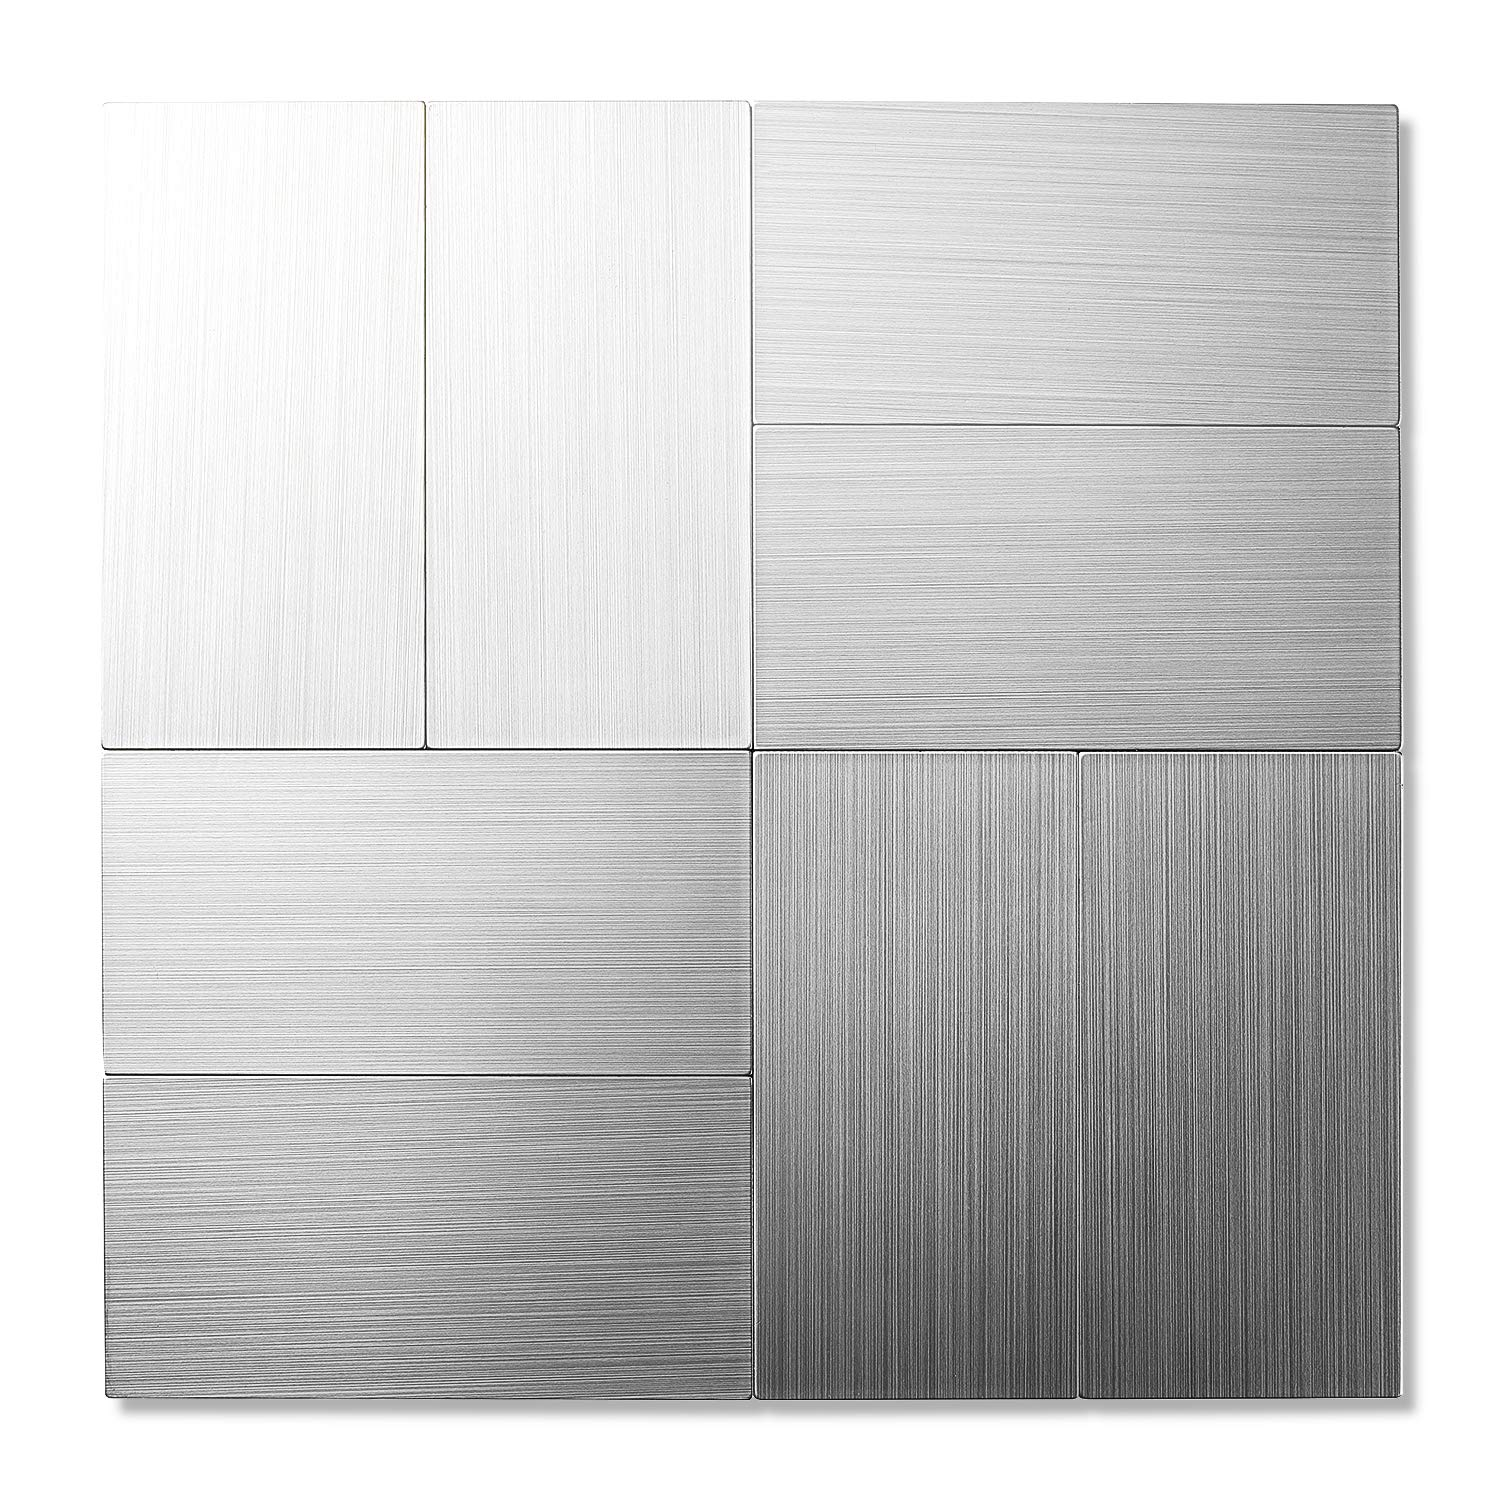 Backsplash Tiles Kitchen Wall Tiles For Kitchen Backsplash 12x12 Sample Sheet